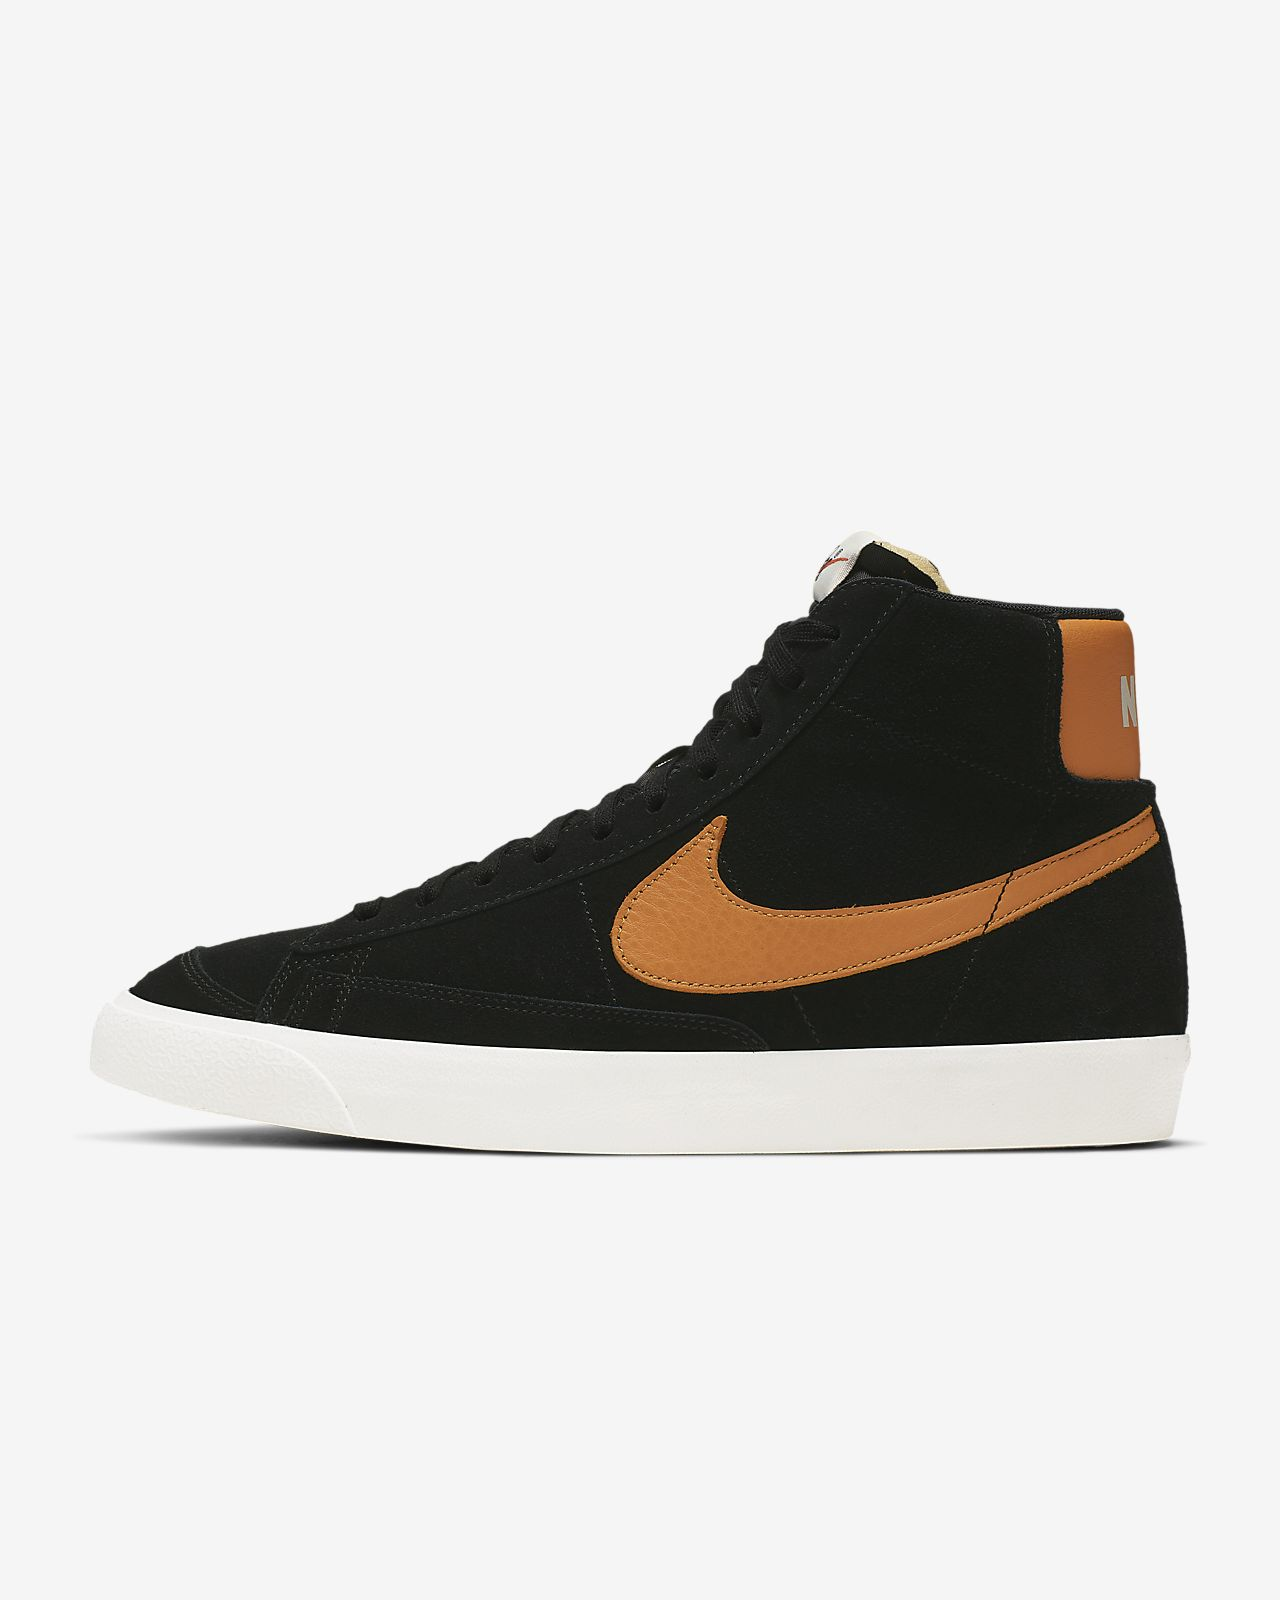 Parfait Nike Blazer Vintage Suede Low Orange Rouge Mid Femme Magasin Officiel